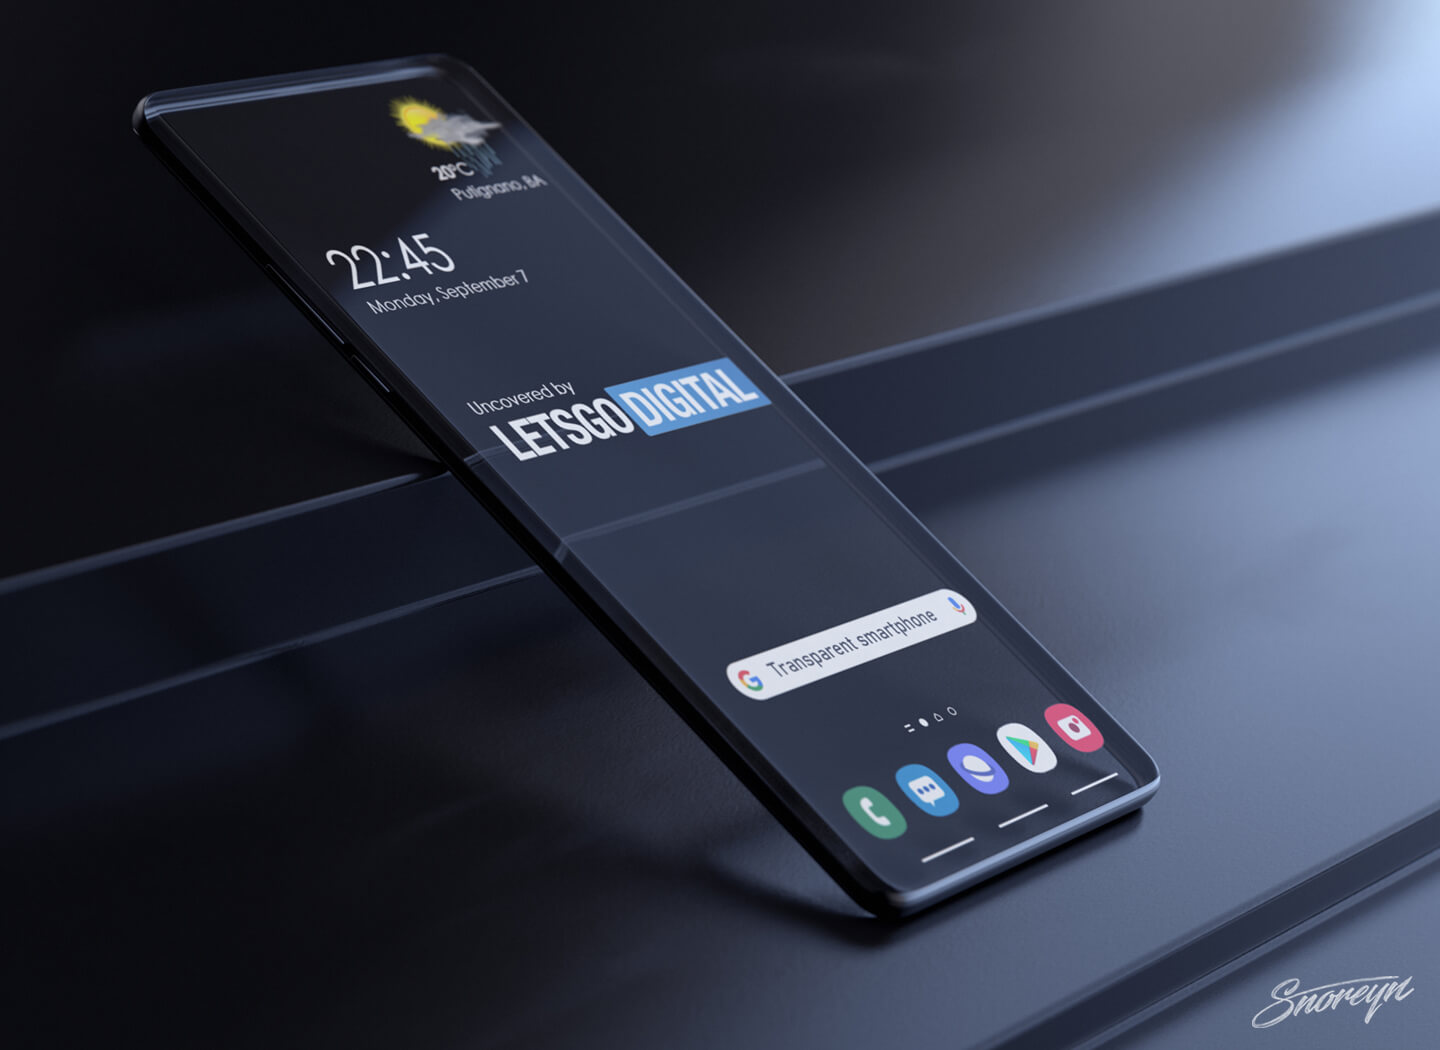 Smartphone with transparent display